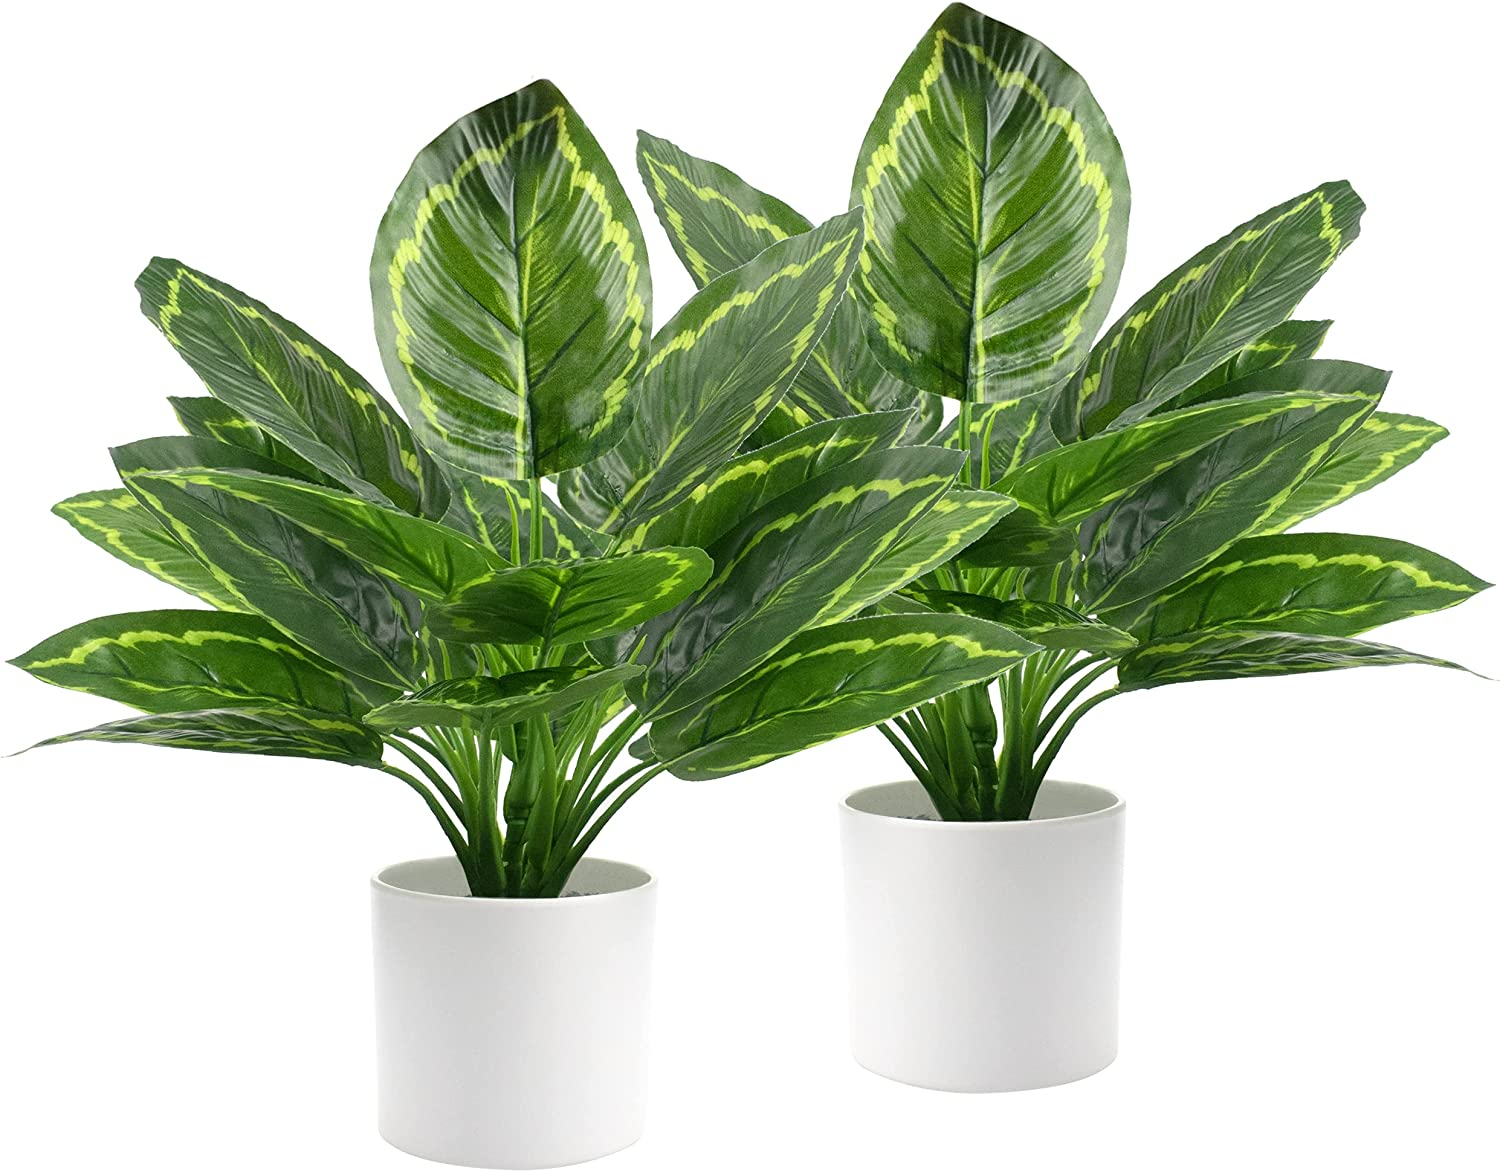 2 Pack Dieffenbachia Live Plant Artificial Hosta Plants Imitation Greenery Potted Faux Tree Leaves with Vase for Home Office Garden Balcony Shelf Decorations